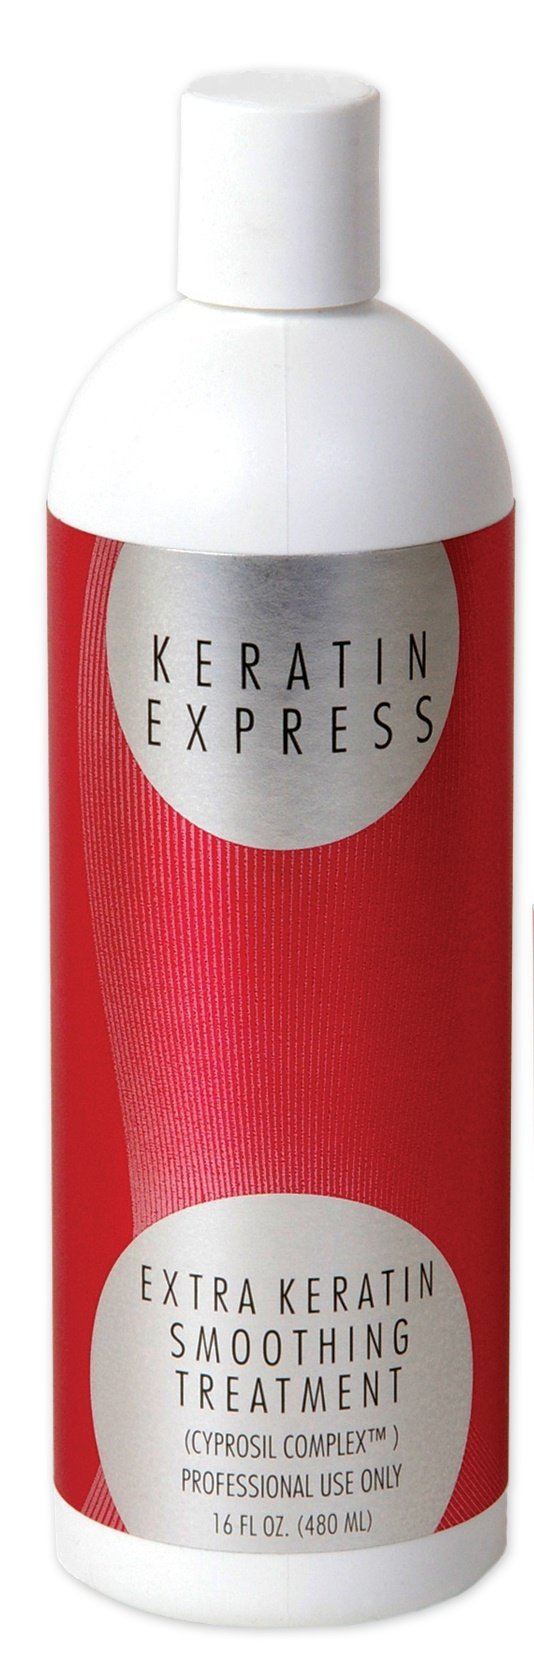 Keratin Express Extra Smoothing Treatment Professional Hair Treatment up to 6 weeks, 16 fl oz Do not use it on Pregnant Women, Children and Nursing